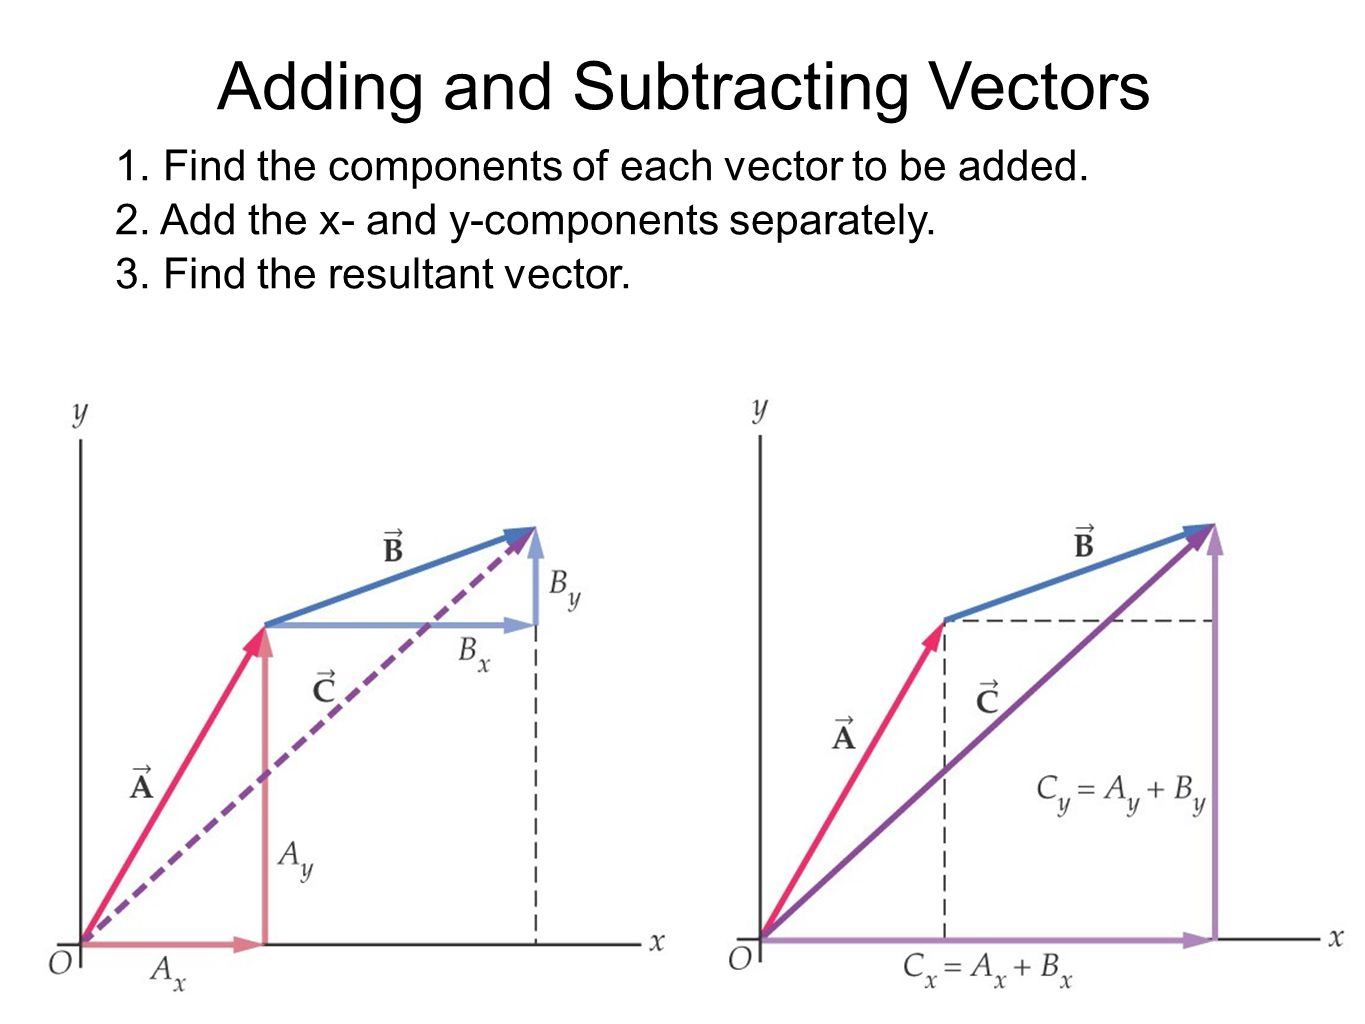 Adding and subtracting multiple vectors